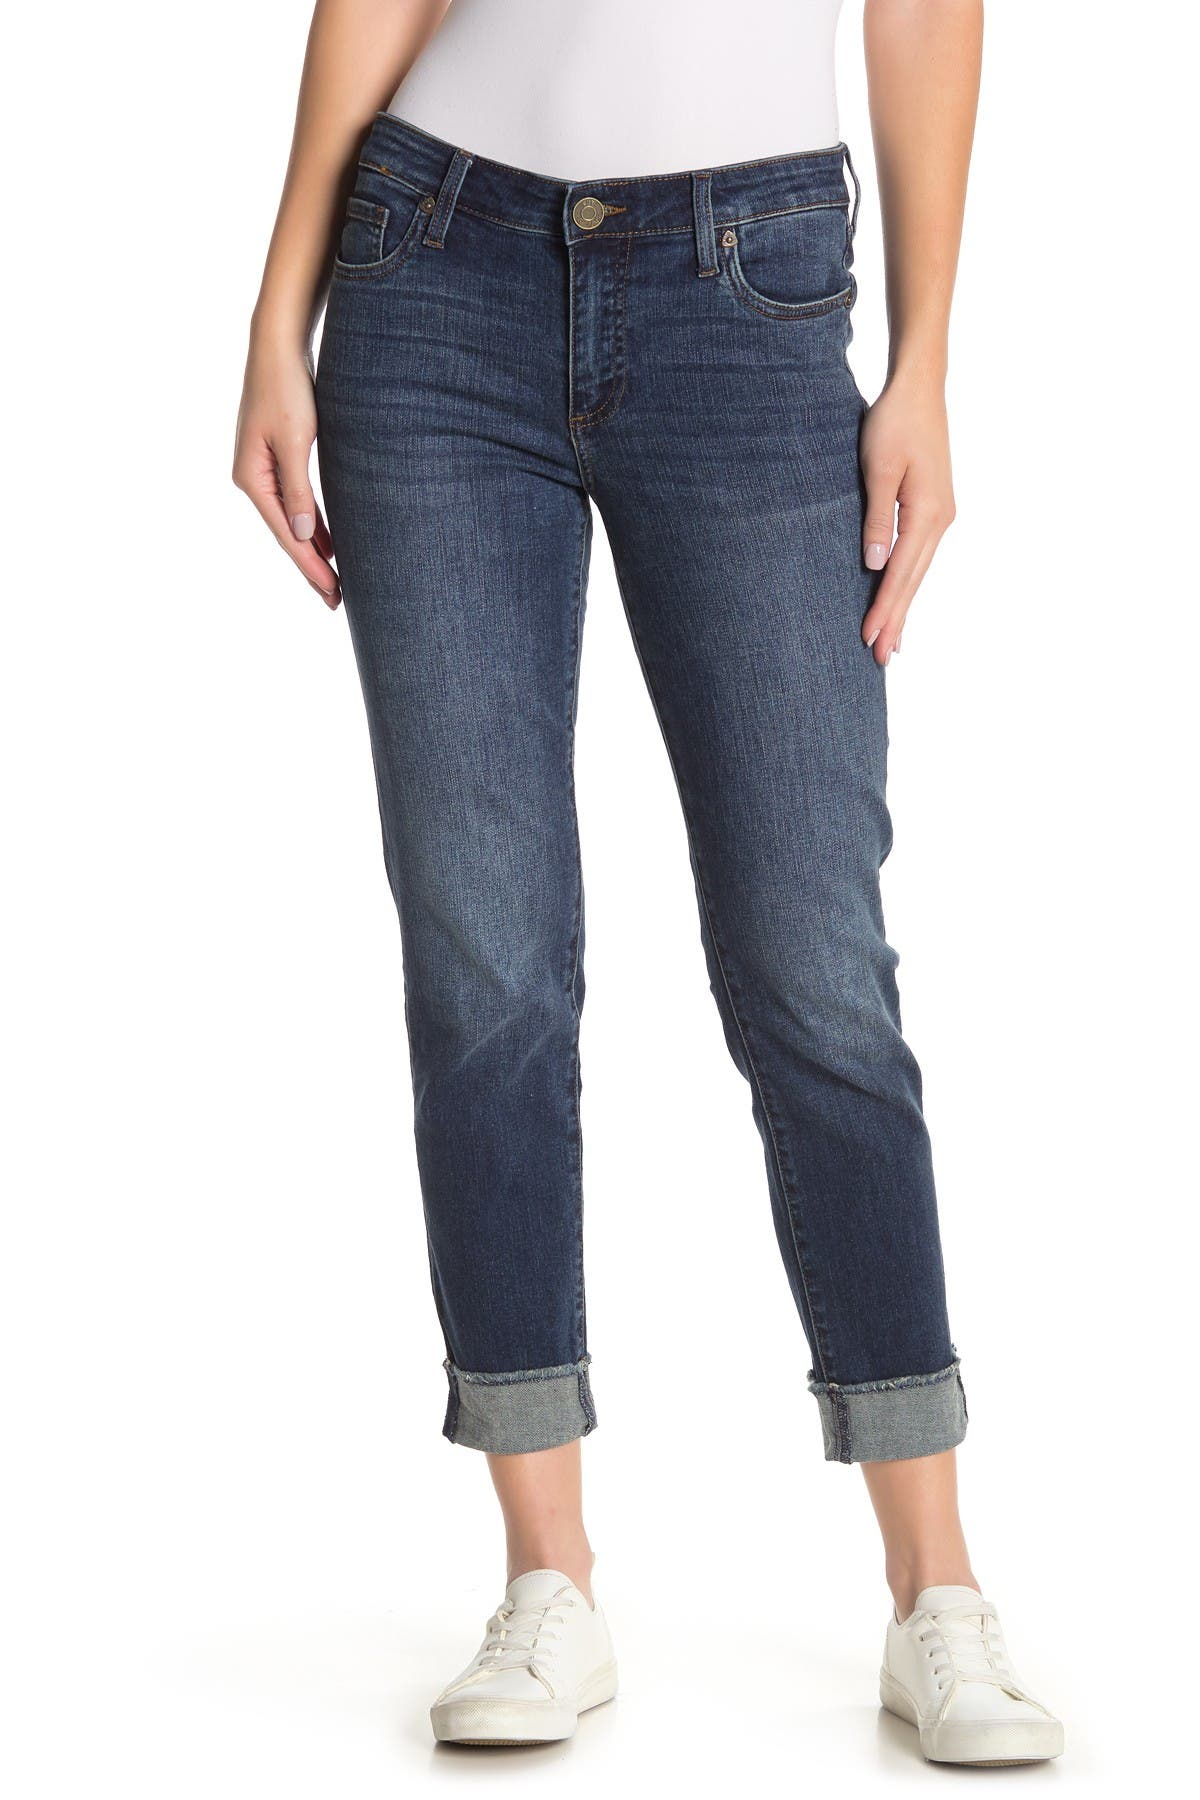 Image of KUT from the Kloth Asher Straight Leg Ankle Jeans